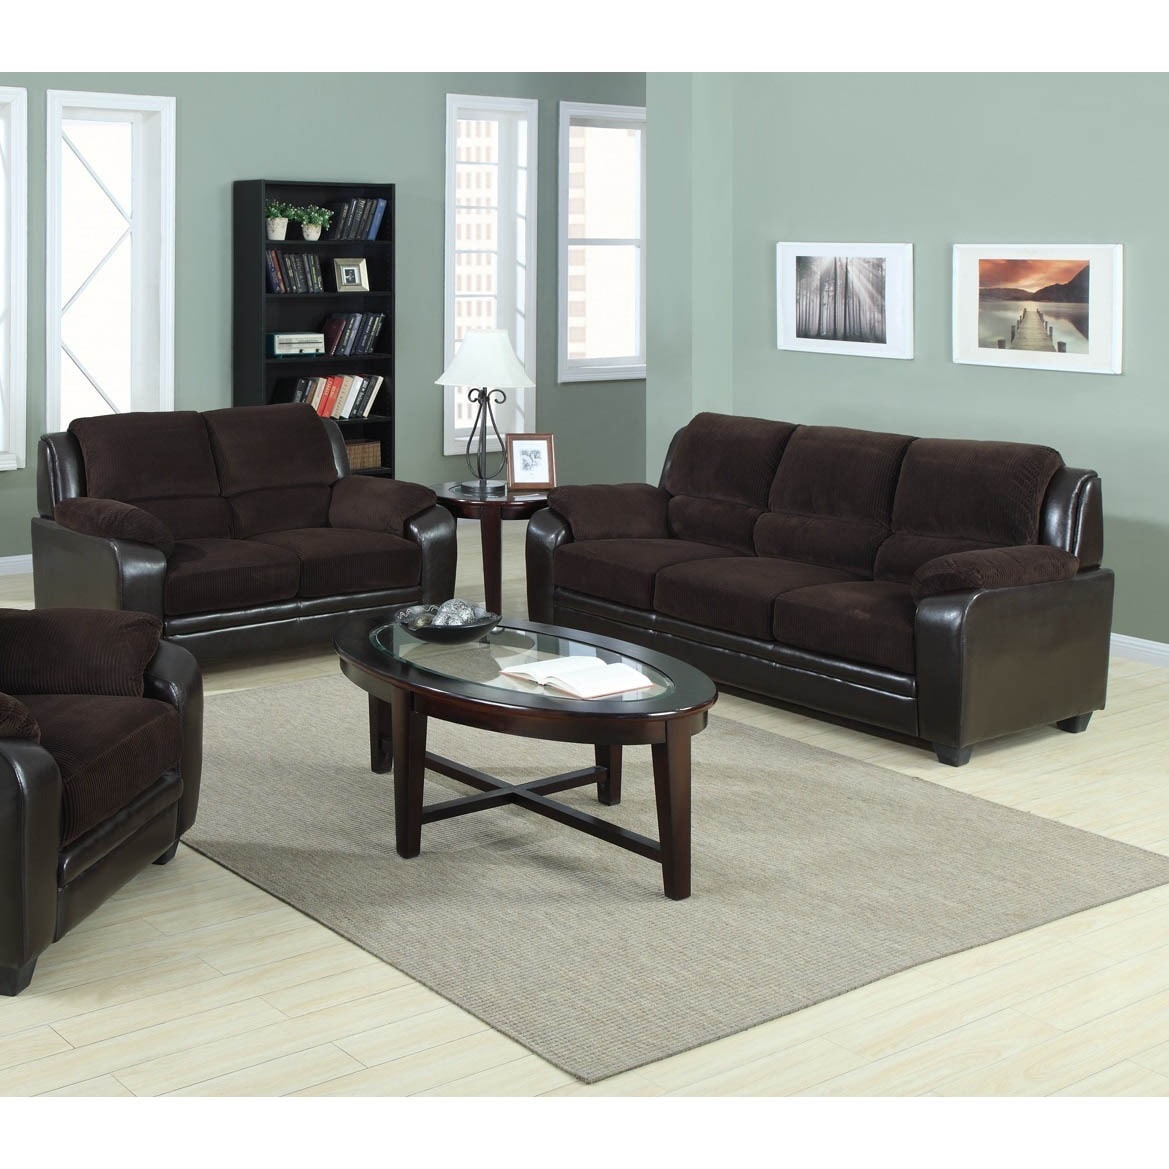 aricept leather luxury of ideas design simple ottoman hd awesome best set fresh sets sofa sofas loveseats loveseat and